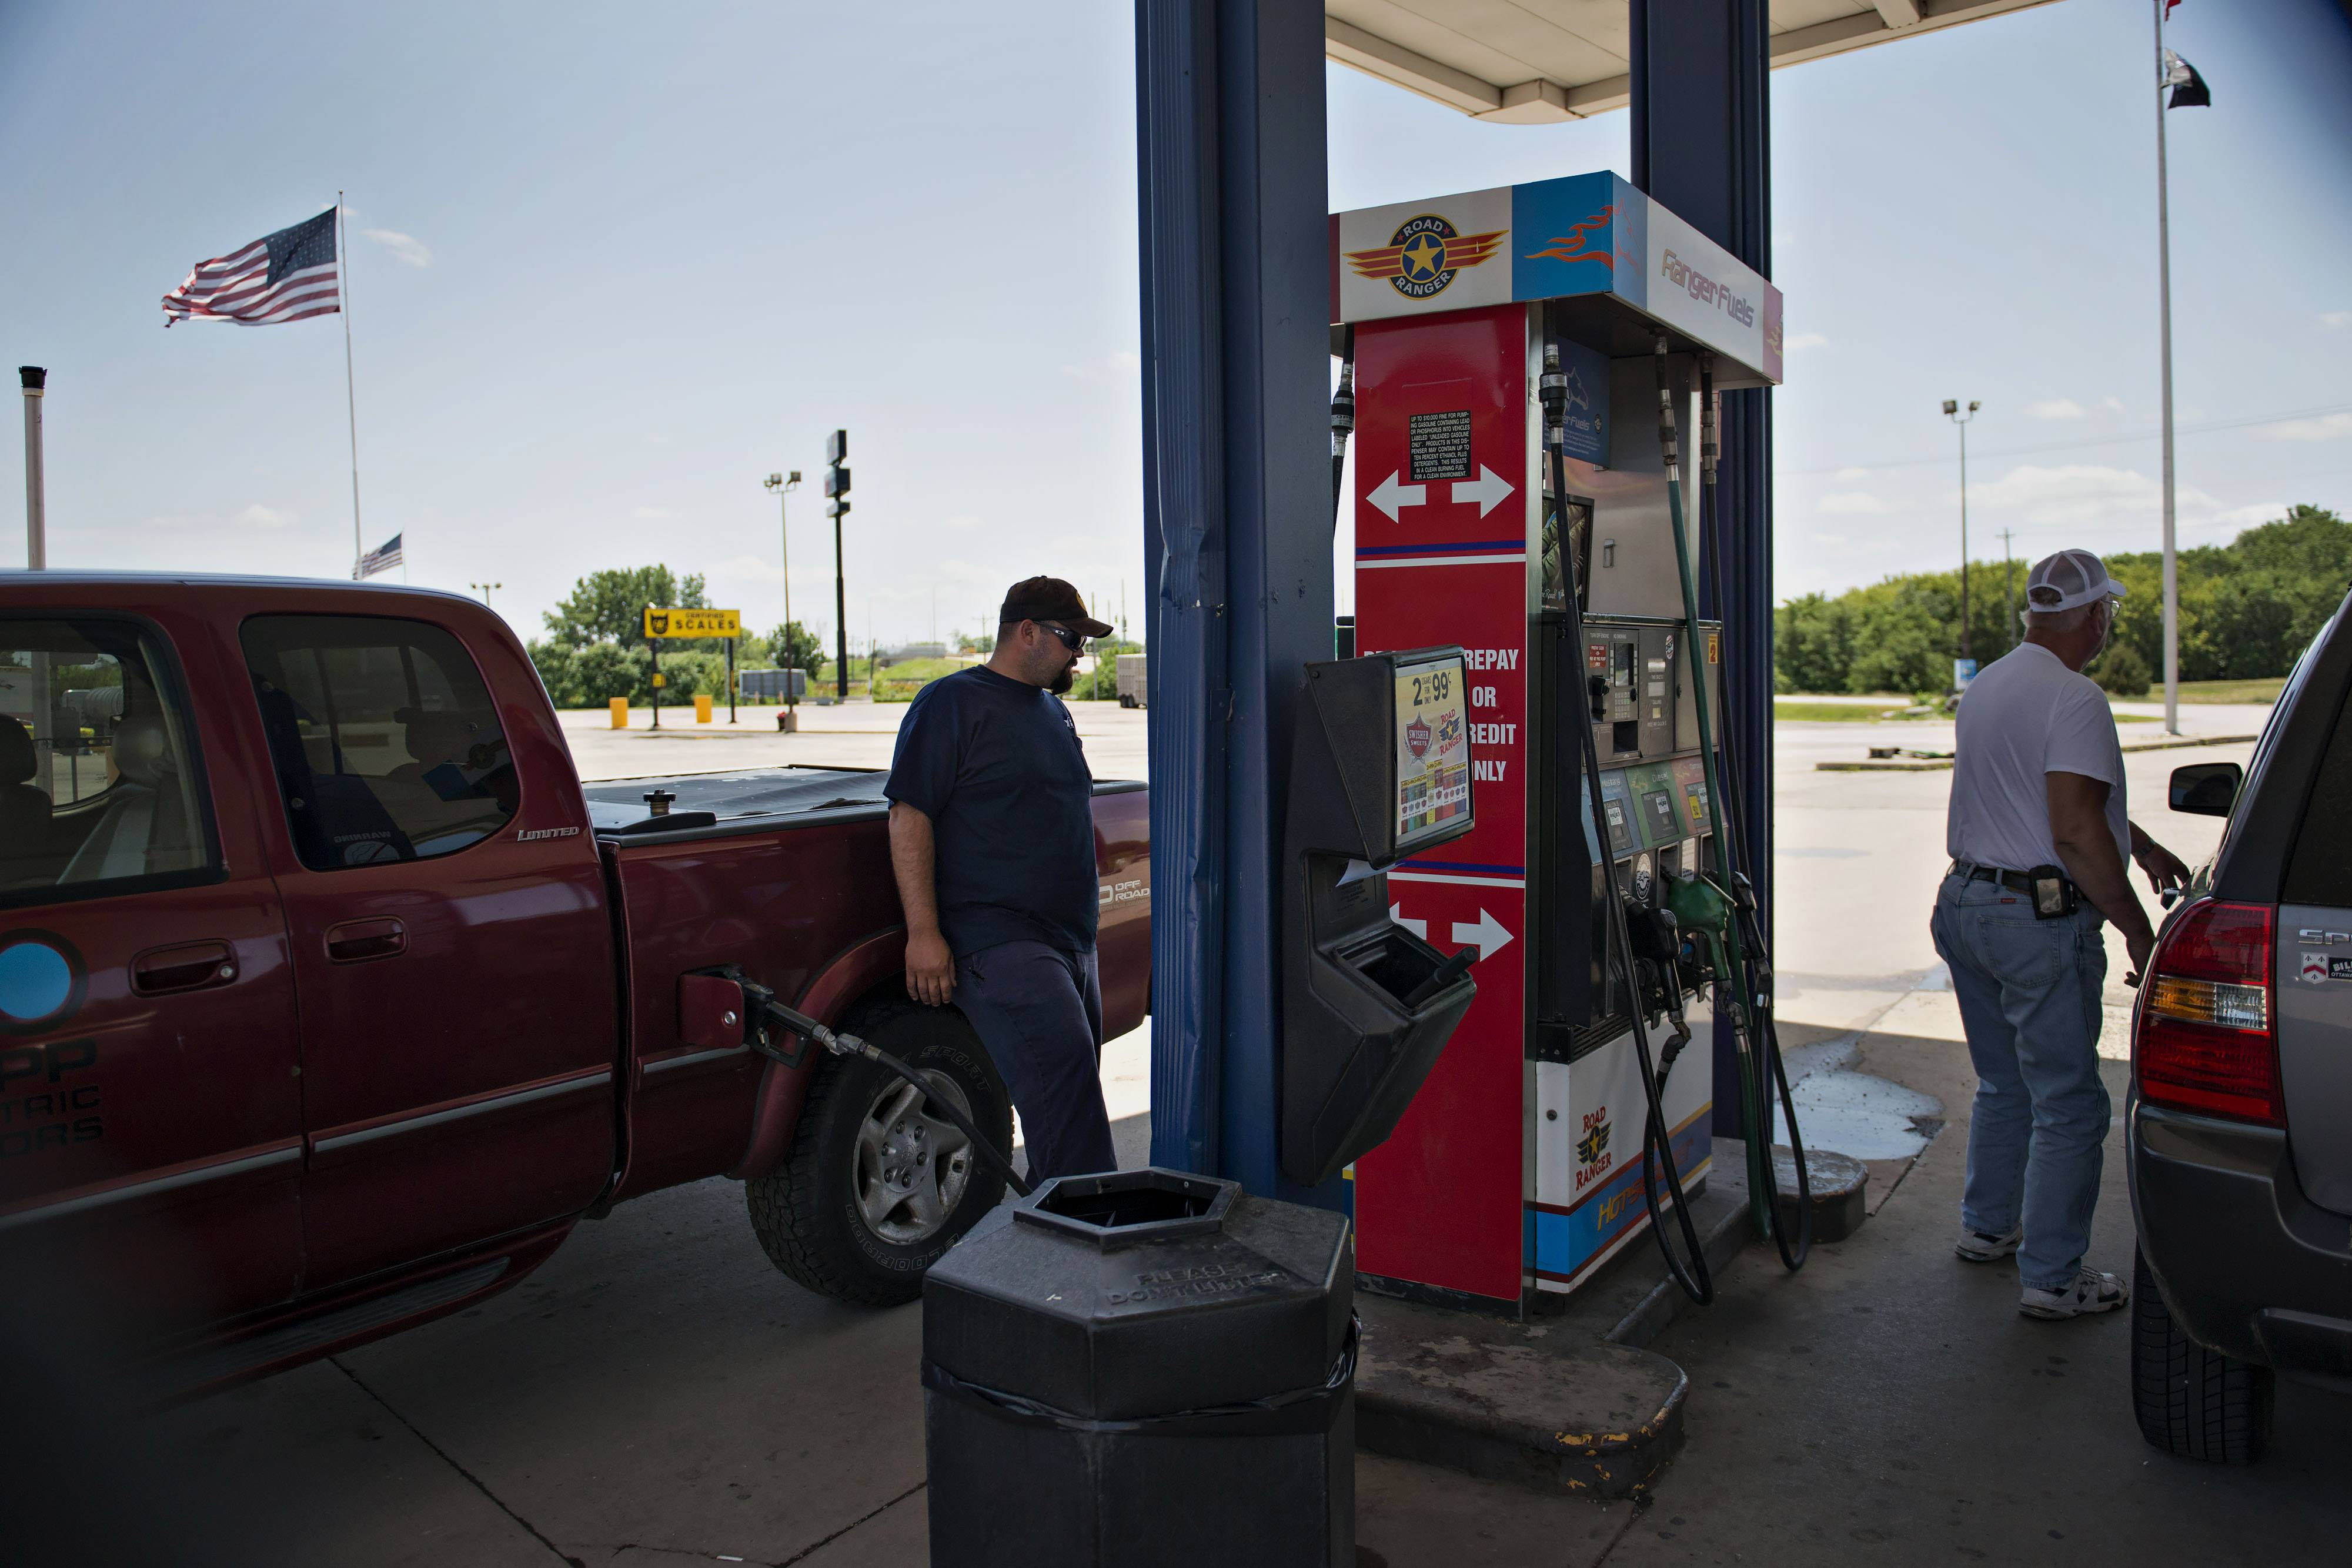 Customers purchase fuel Tuesday at a Road Ranger gas station in Princeton, Illinois. Lawmakers have been reluctant to raise fuel taxes despite calls from several blue-ribbon commissions to do so.